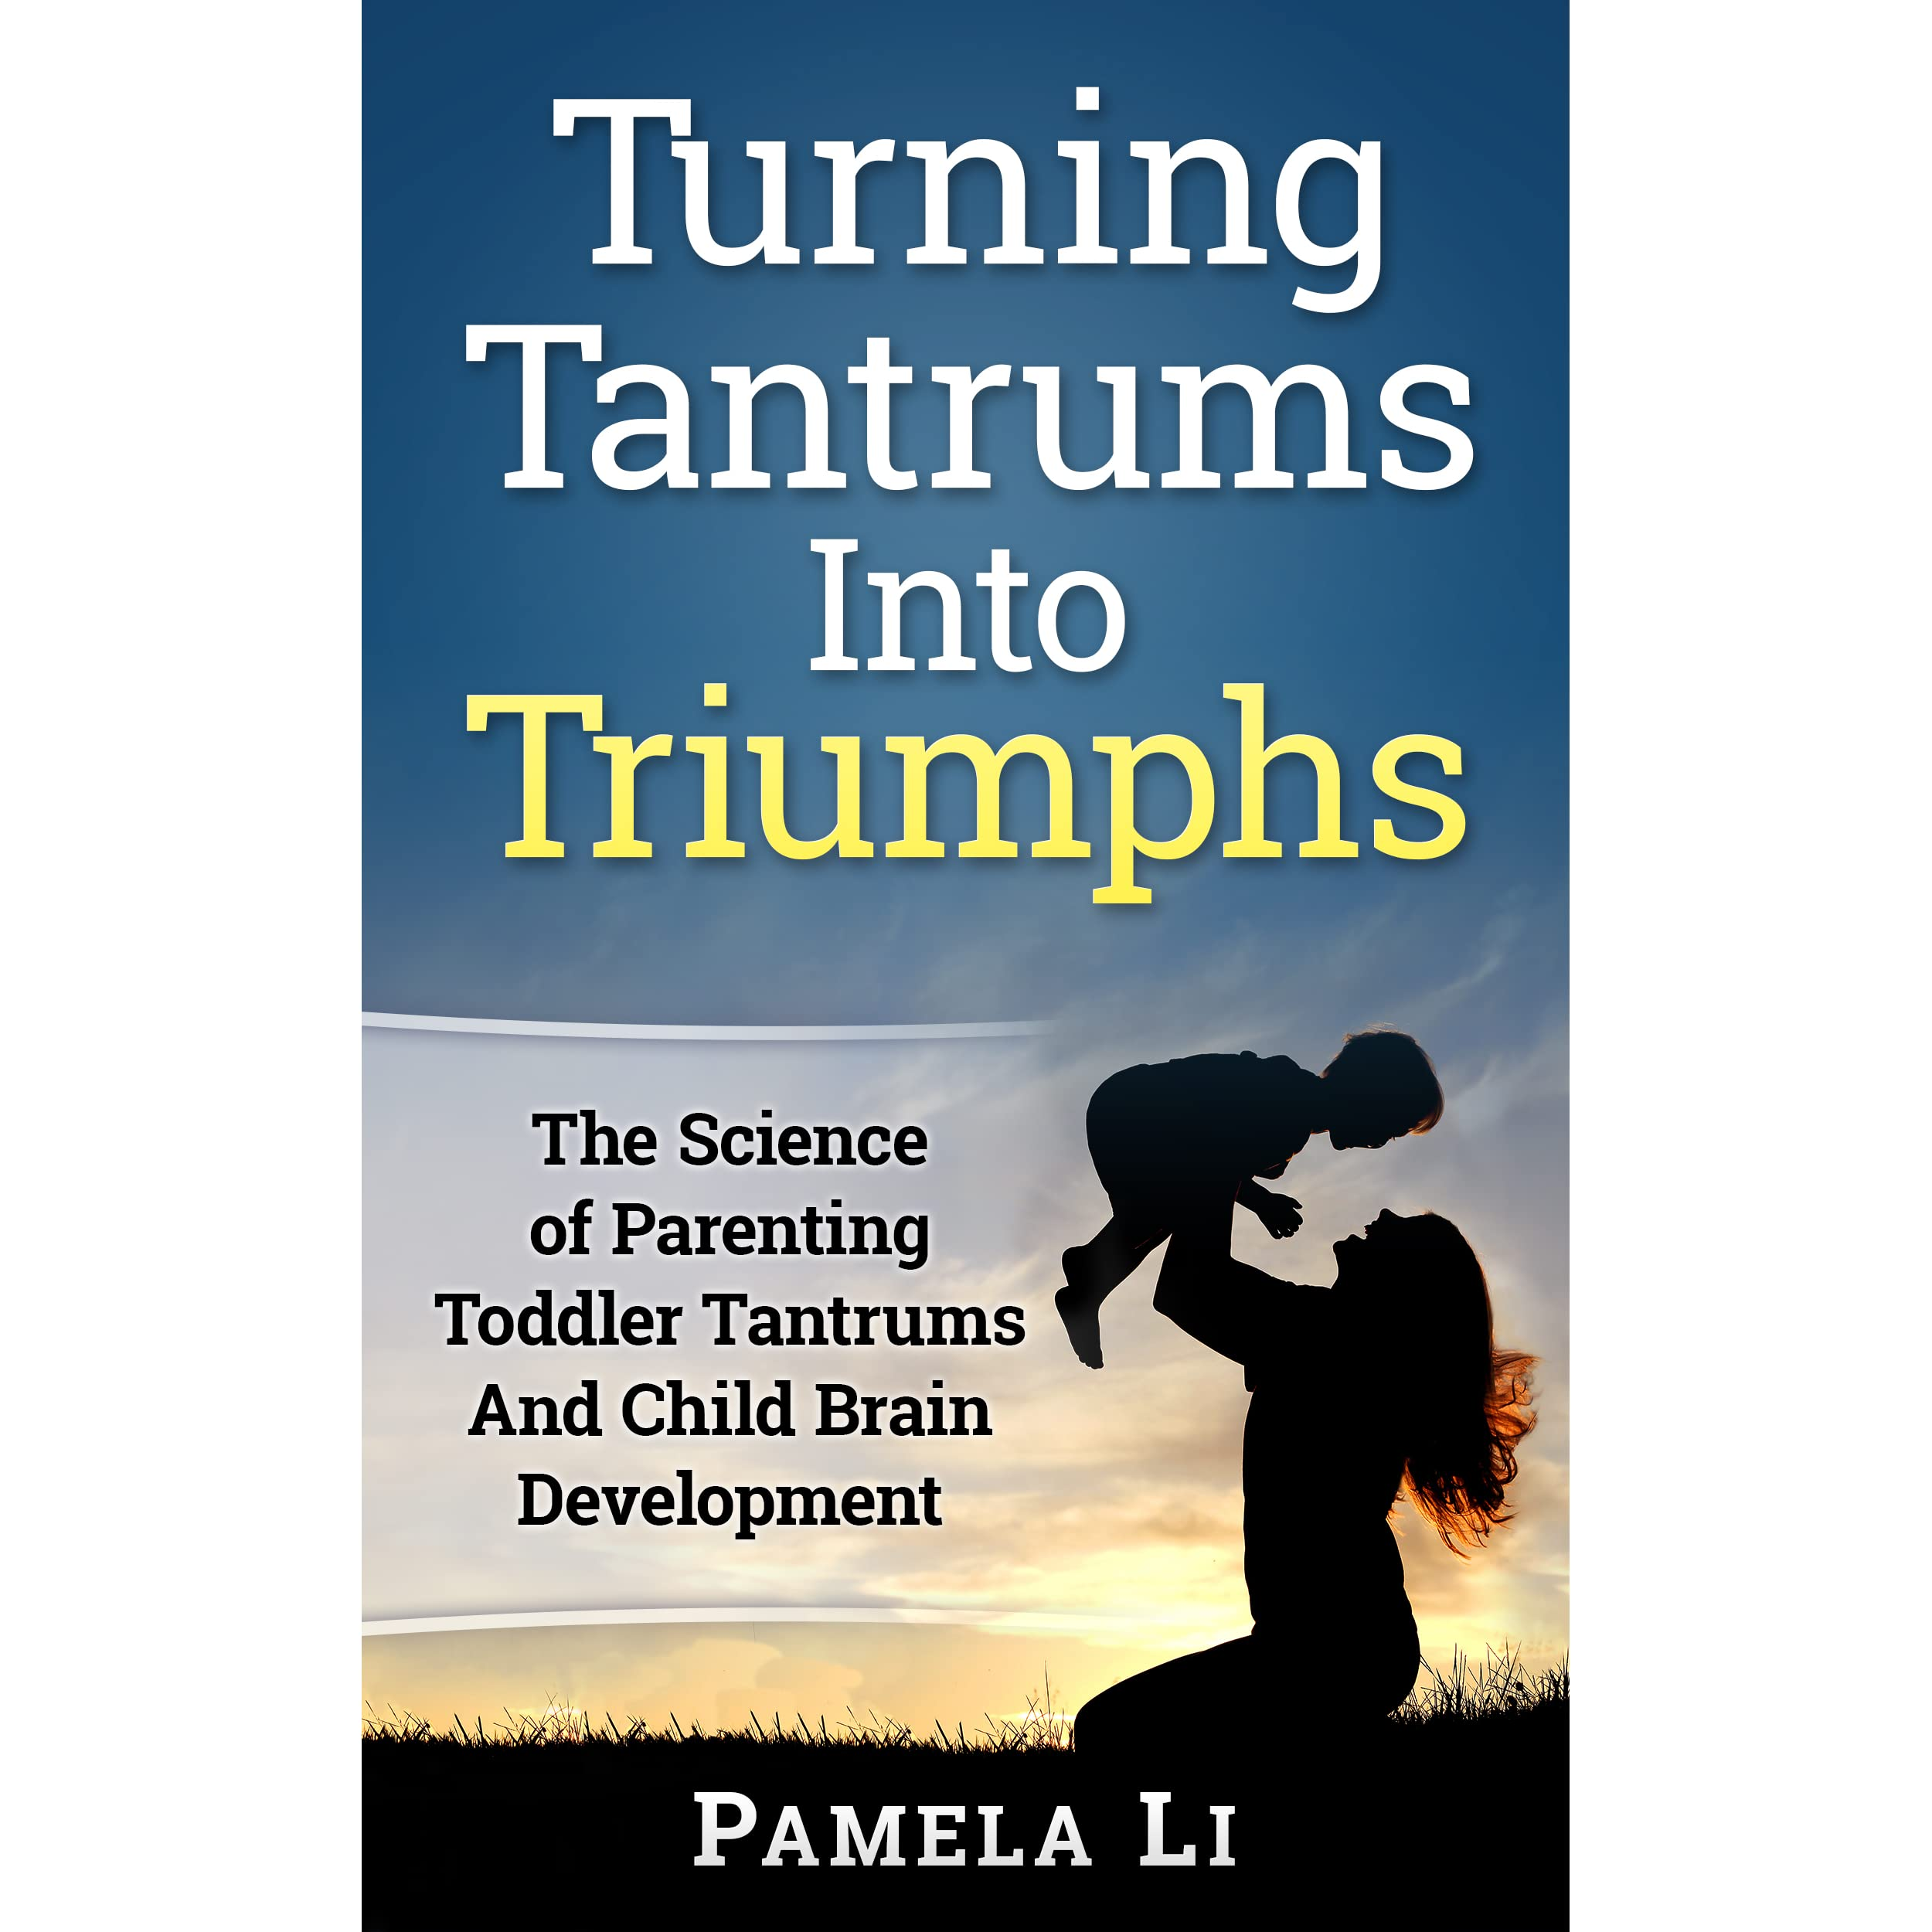 brain development and temper tantrums 5 year old boy's temper tantrums are diminishing, and he is better able to control his emotions from a brain development standpoint: a his brain chemestry is more regular b his prefrontal cortex is becoming more developed c the language area in his brain is more developed d  his thinking has developed to the concrete operational stage.